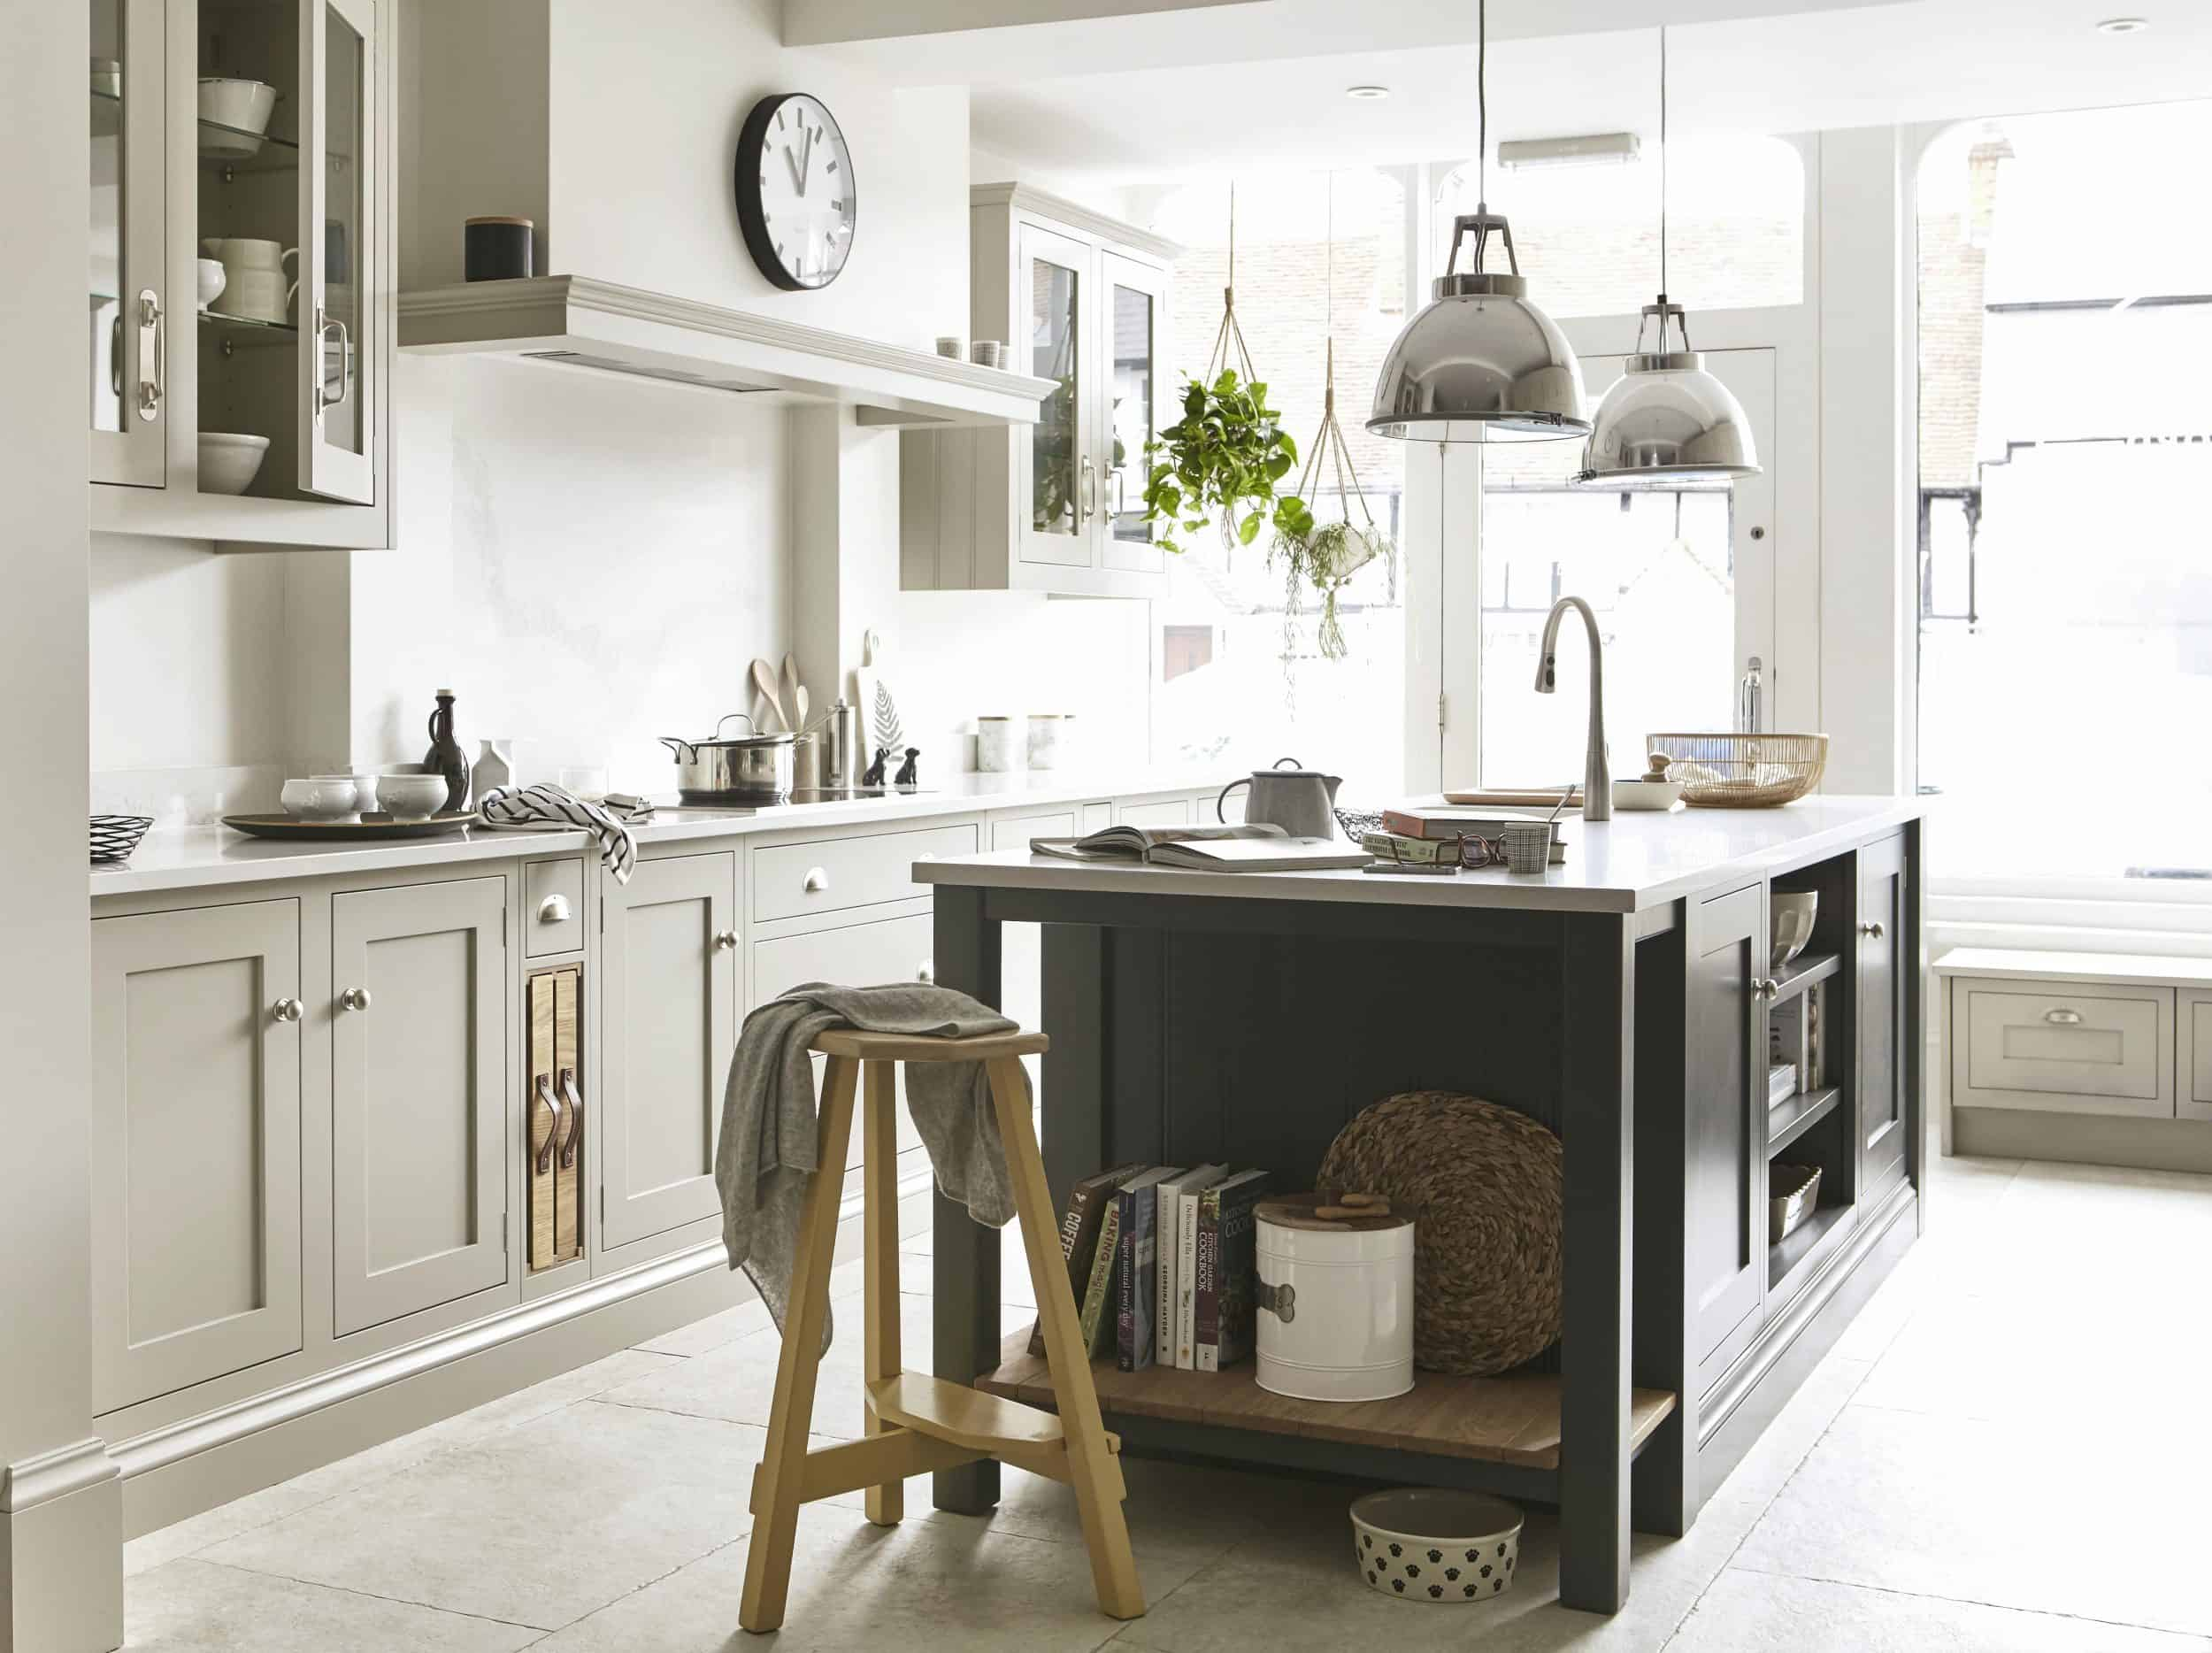 Classic Shaker Kitchen John Lewis of Hungerford